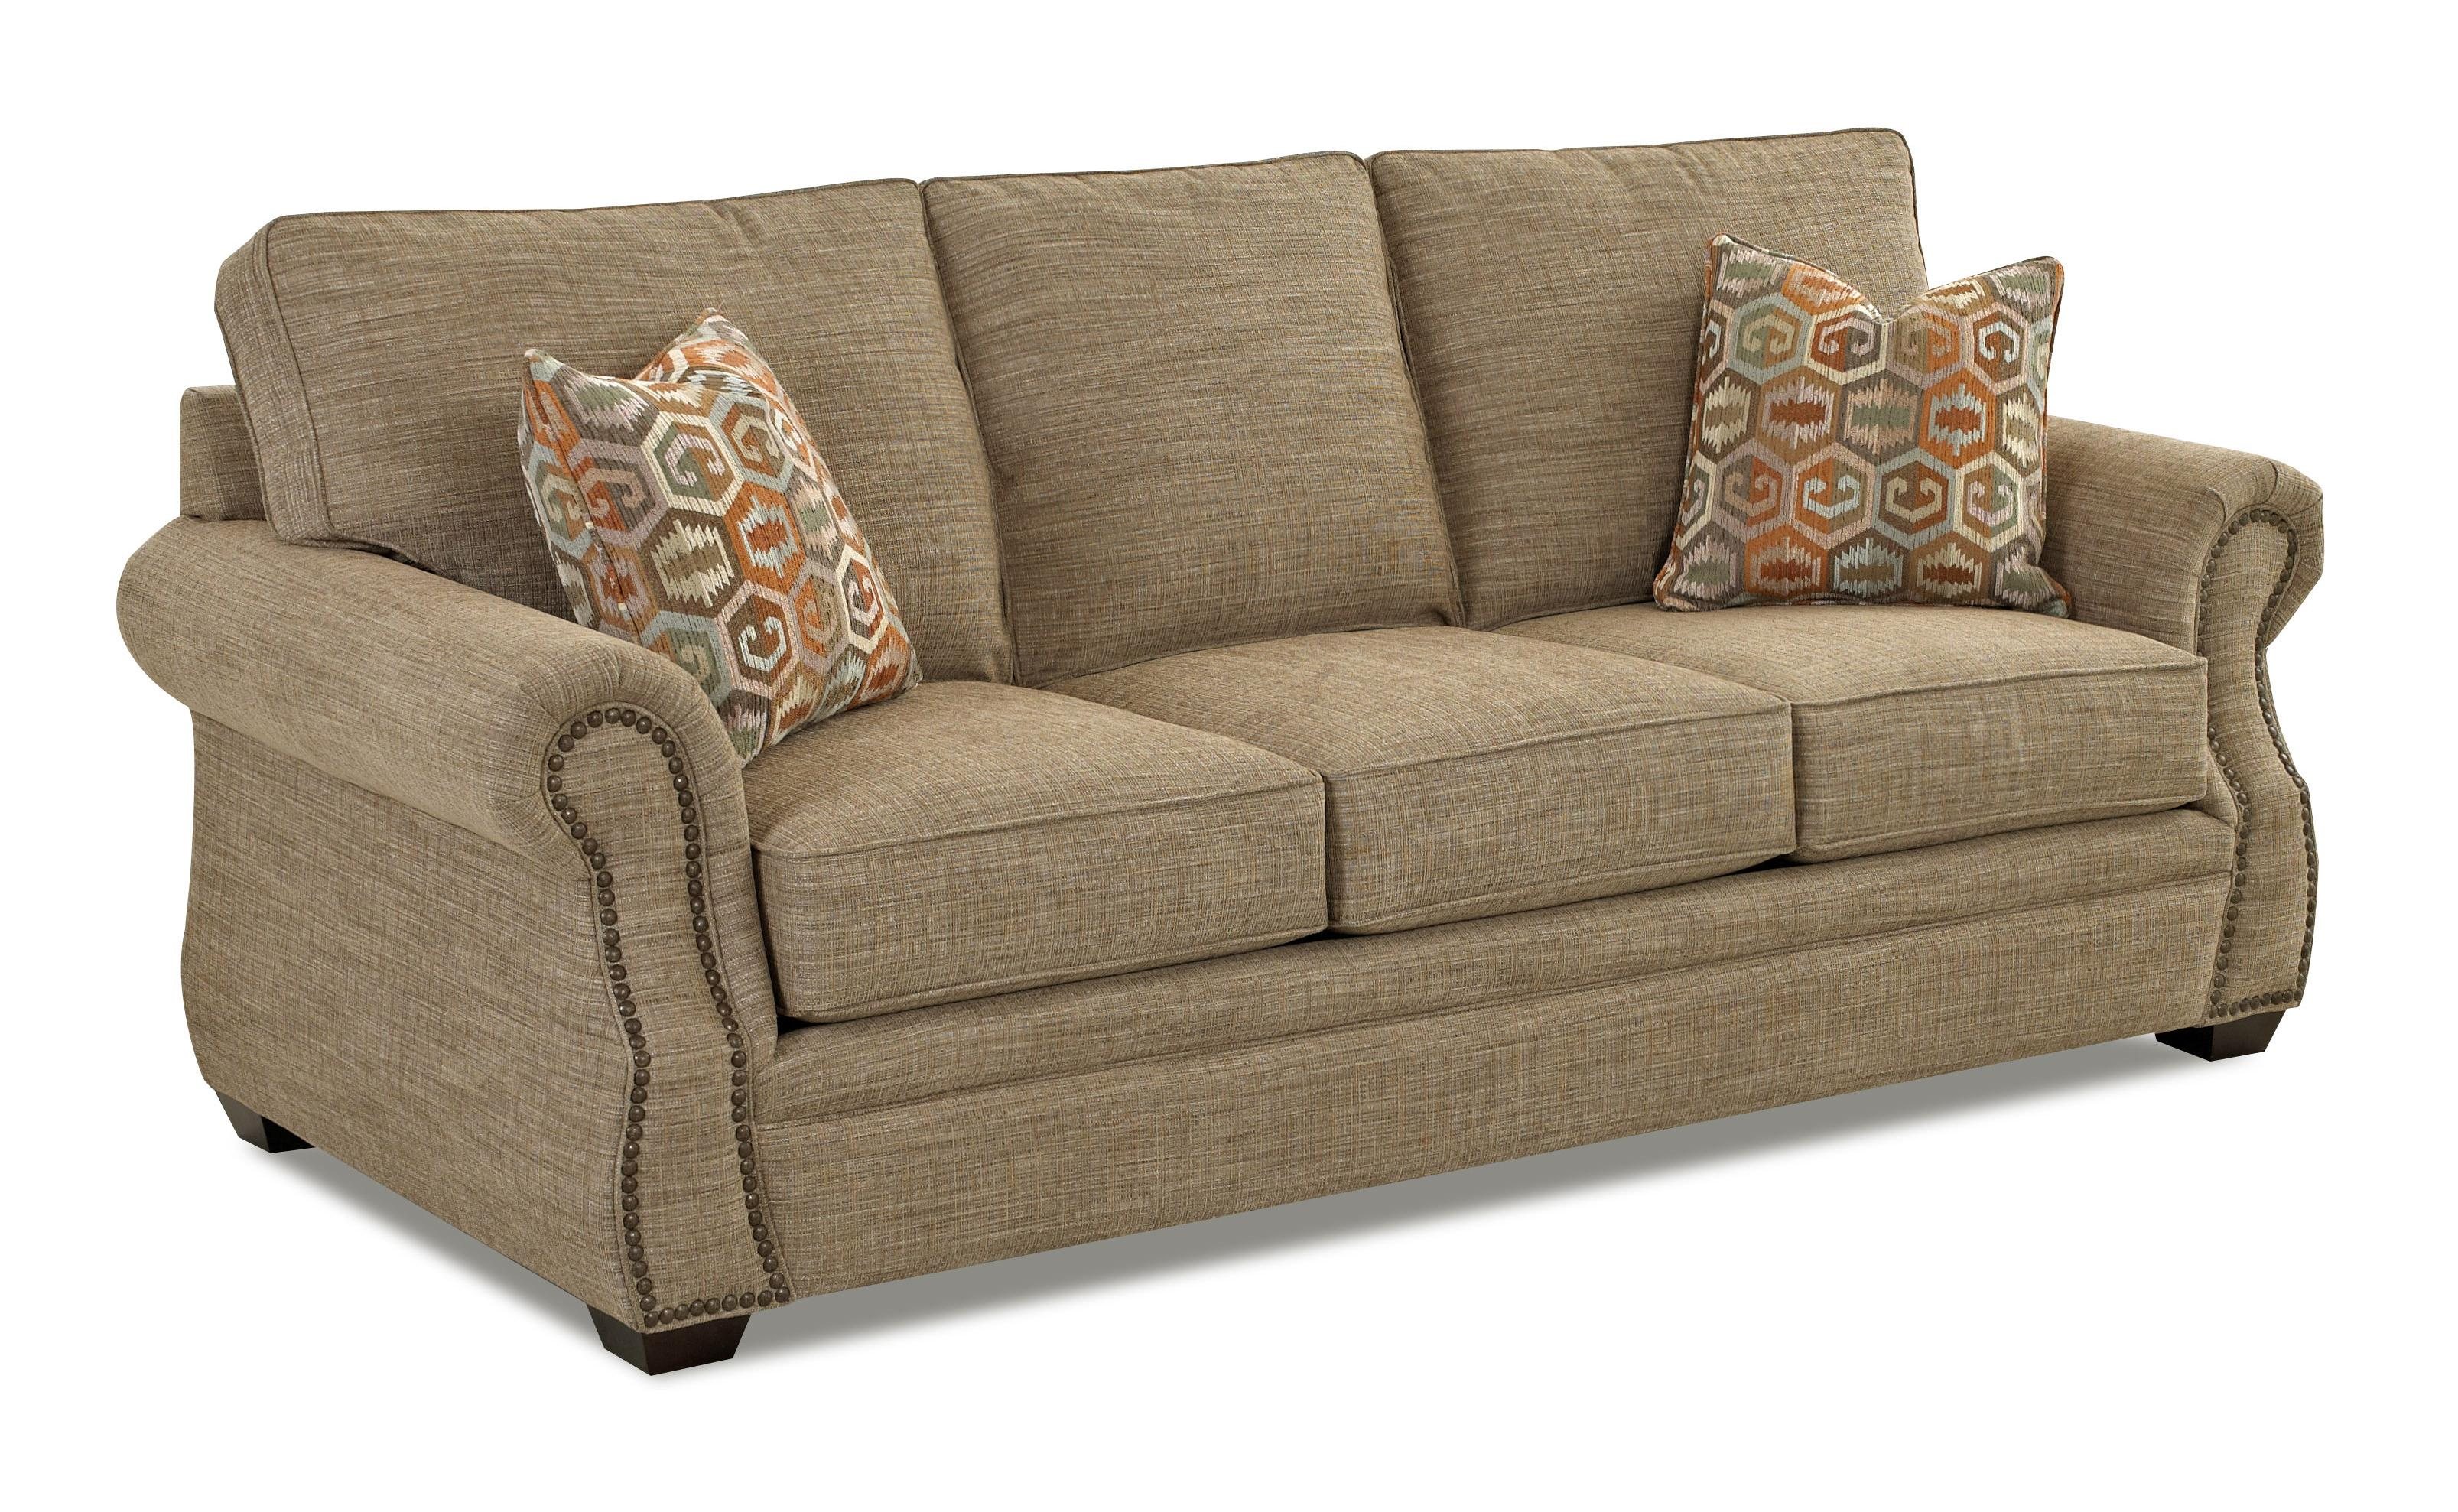 Traditional Enso Memory Foam Queen Sleeper Sofa With